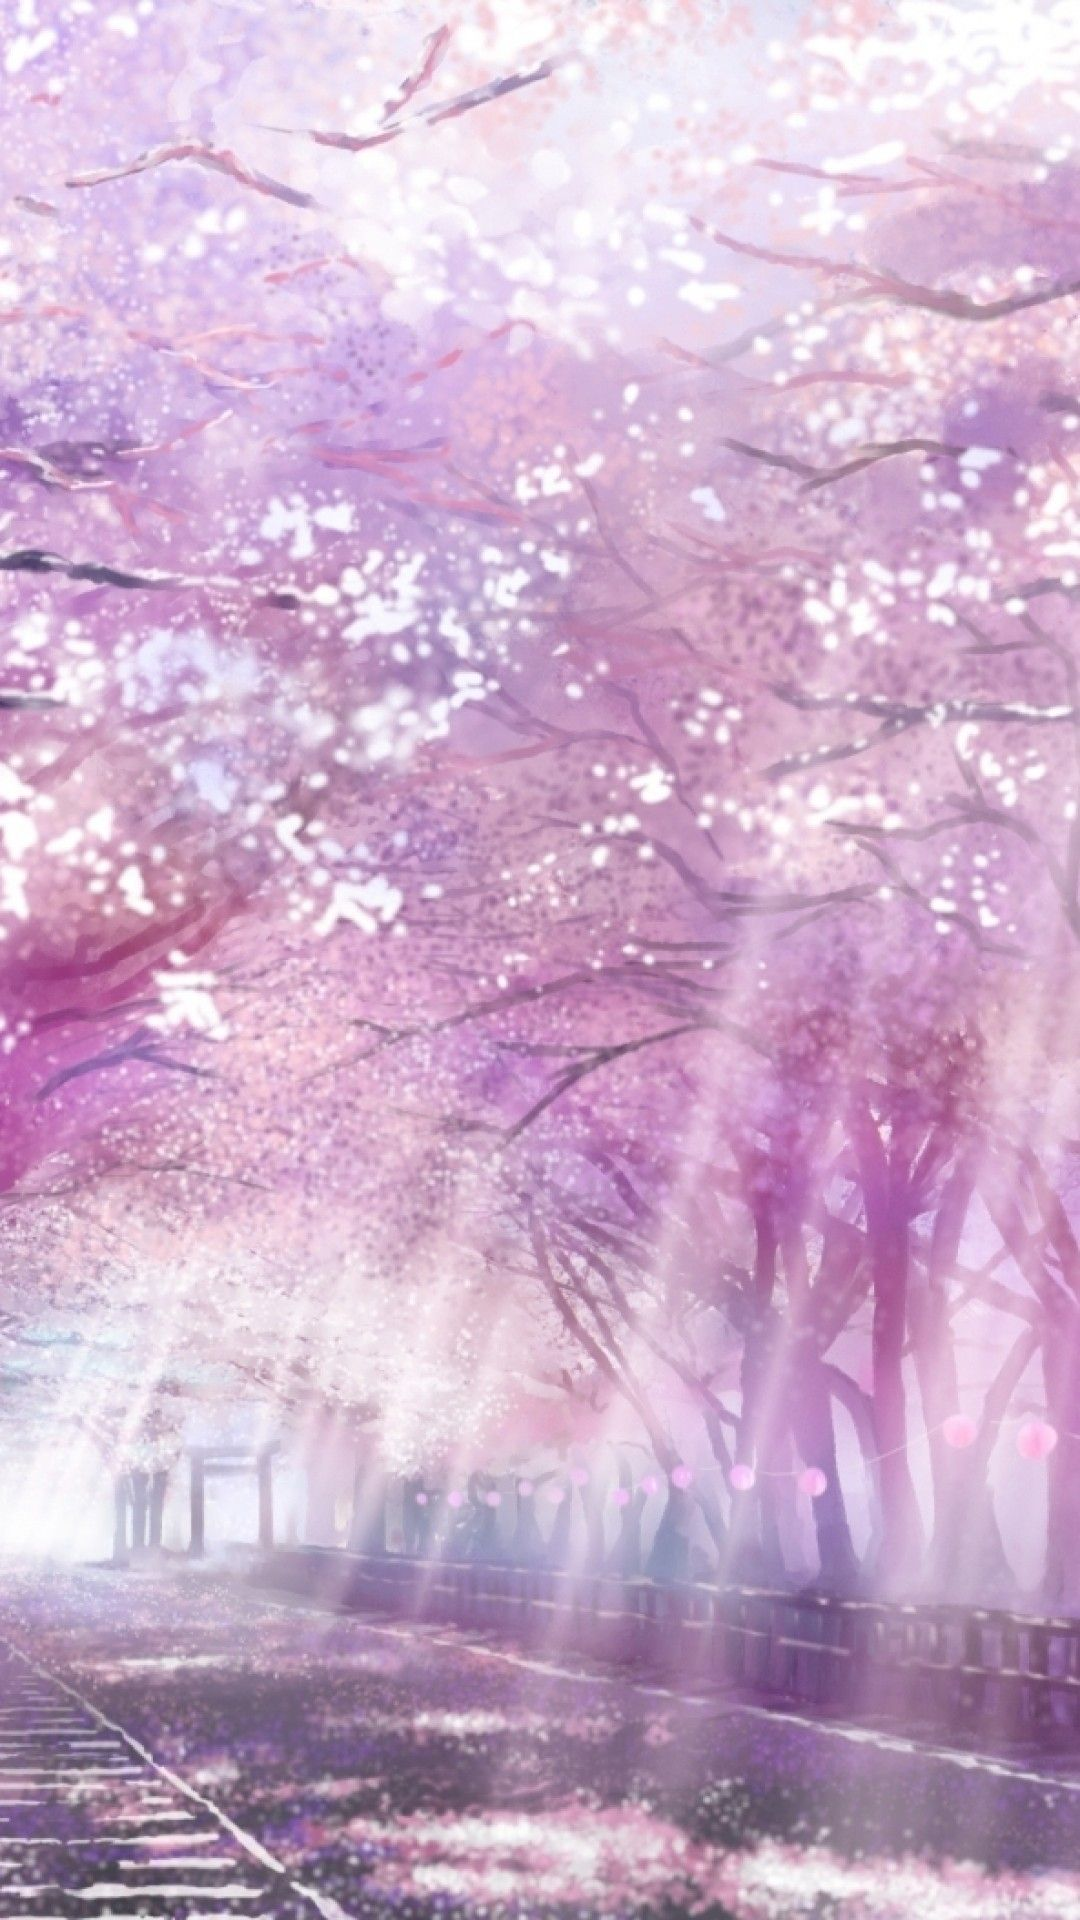 Cherry Blossom Anime Background : cherry, blossom, anime, background, Cherry, Blossoms, Anime, Scenery, Wallpapers, Backgrounds, WallpaperAccess